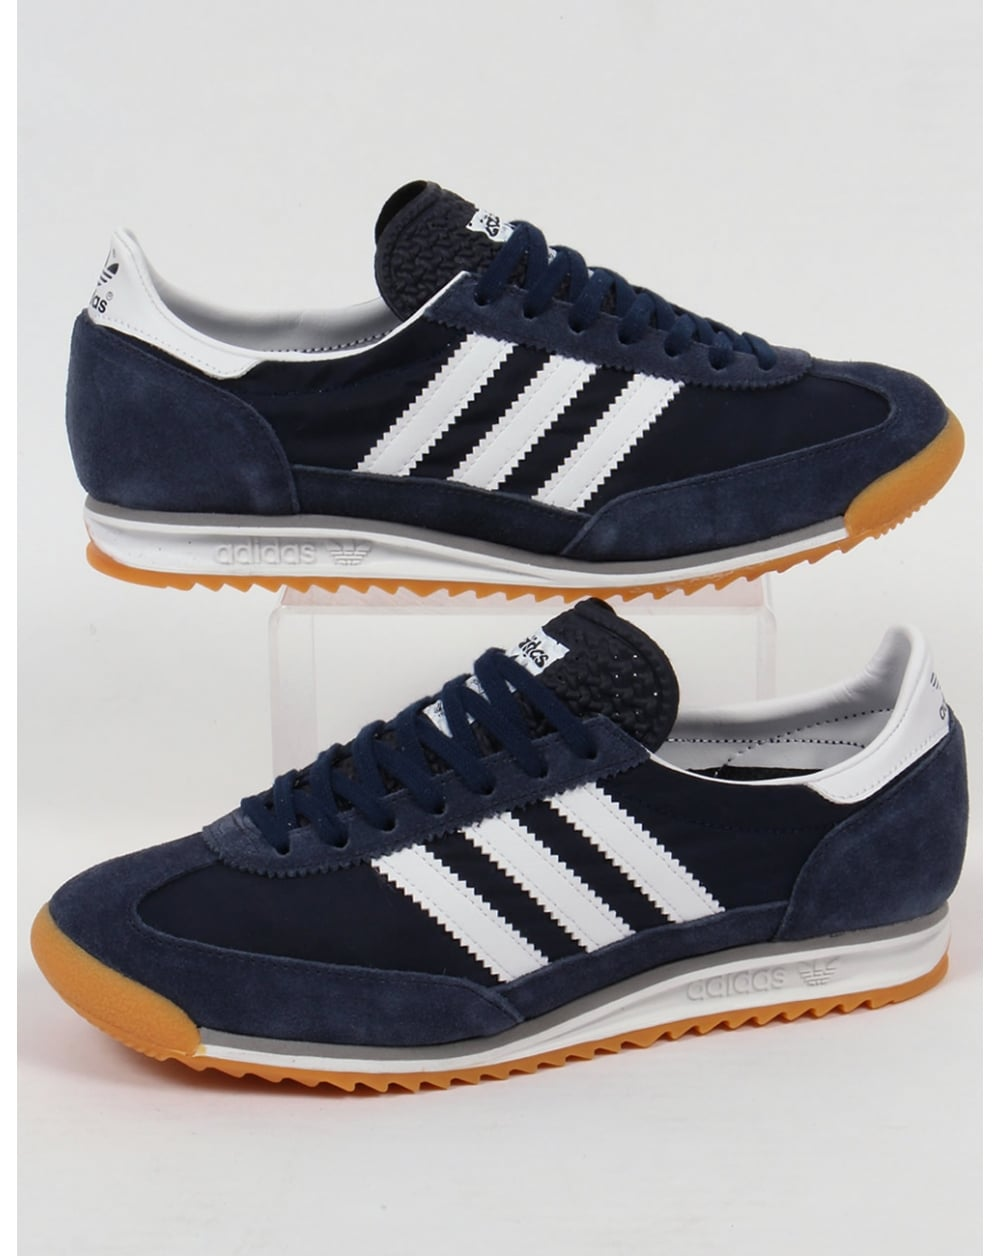 adidas sl 72 trainers navy white originals shoes sneakers. Black Bedroom Furniture Sets. Home Design Ideas